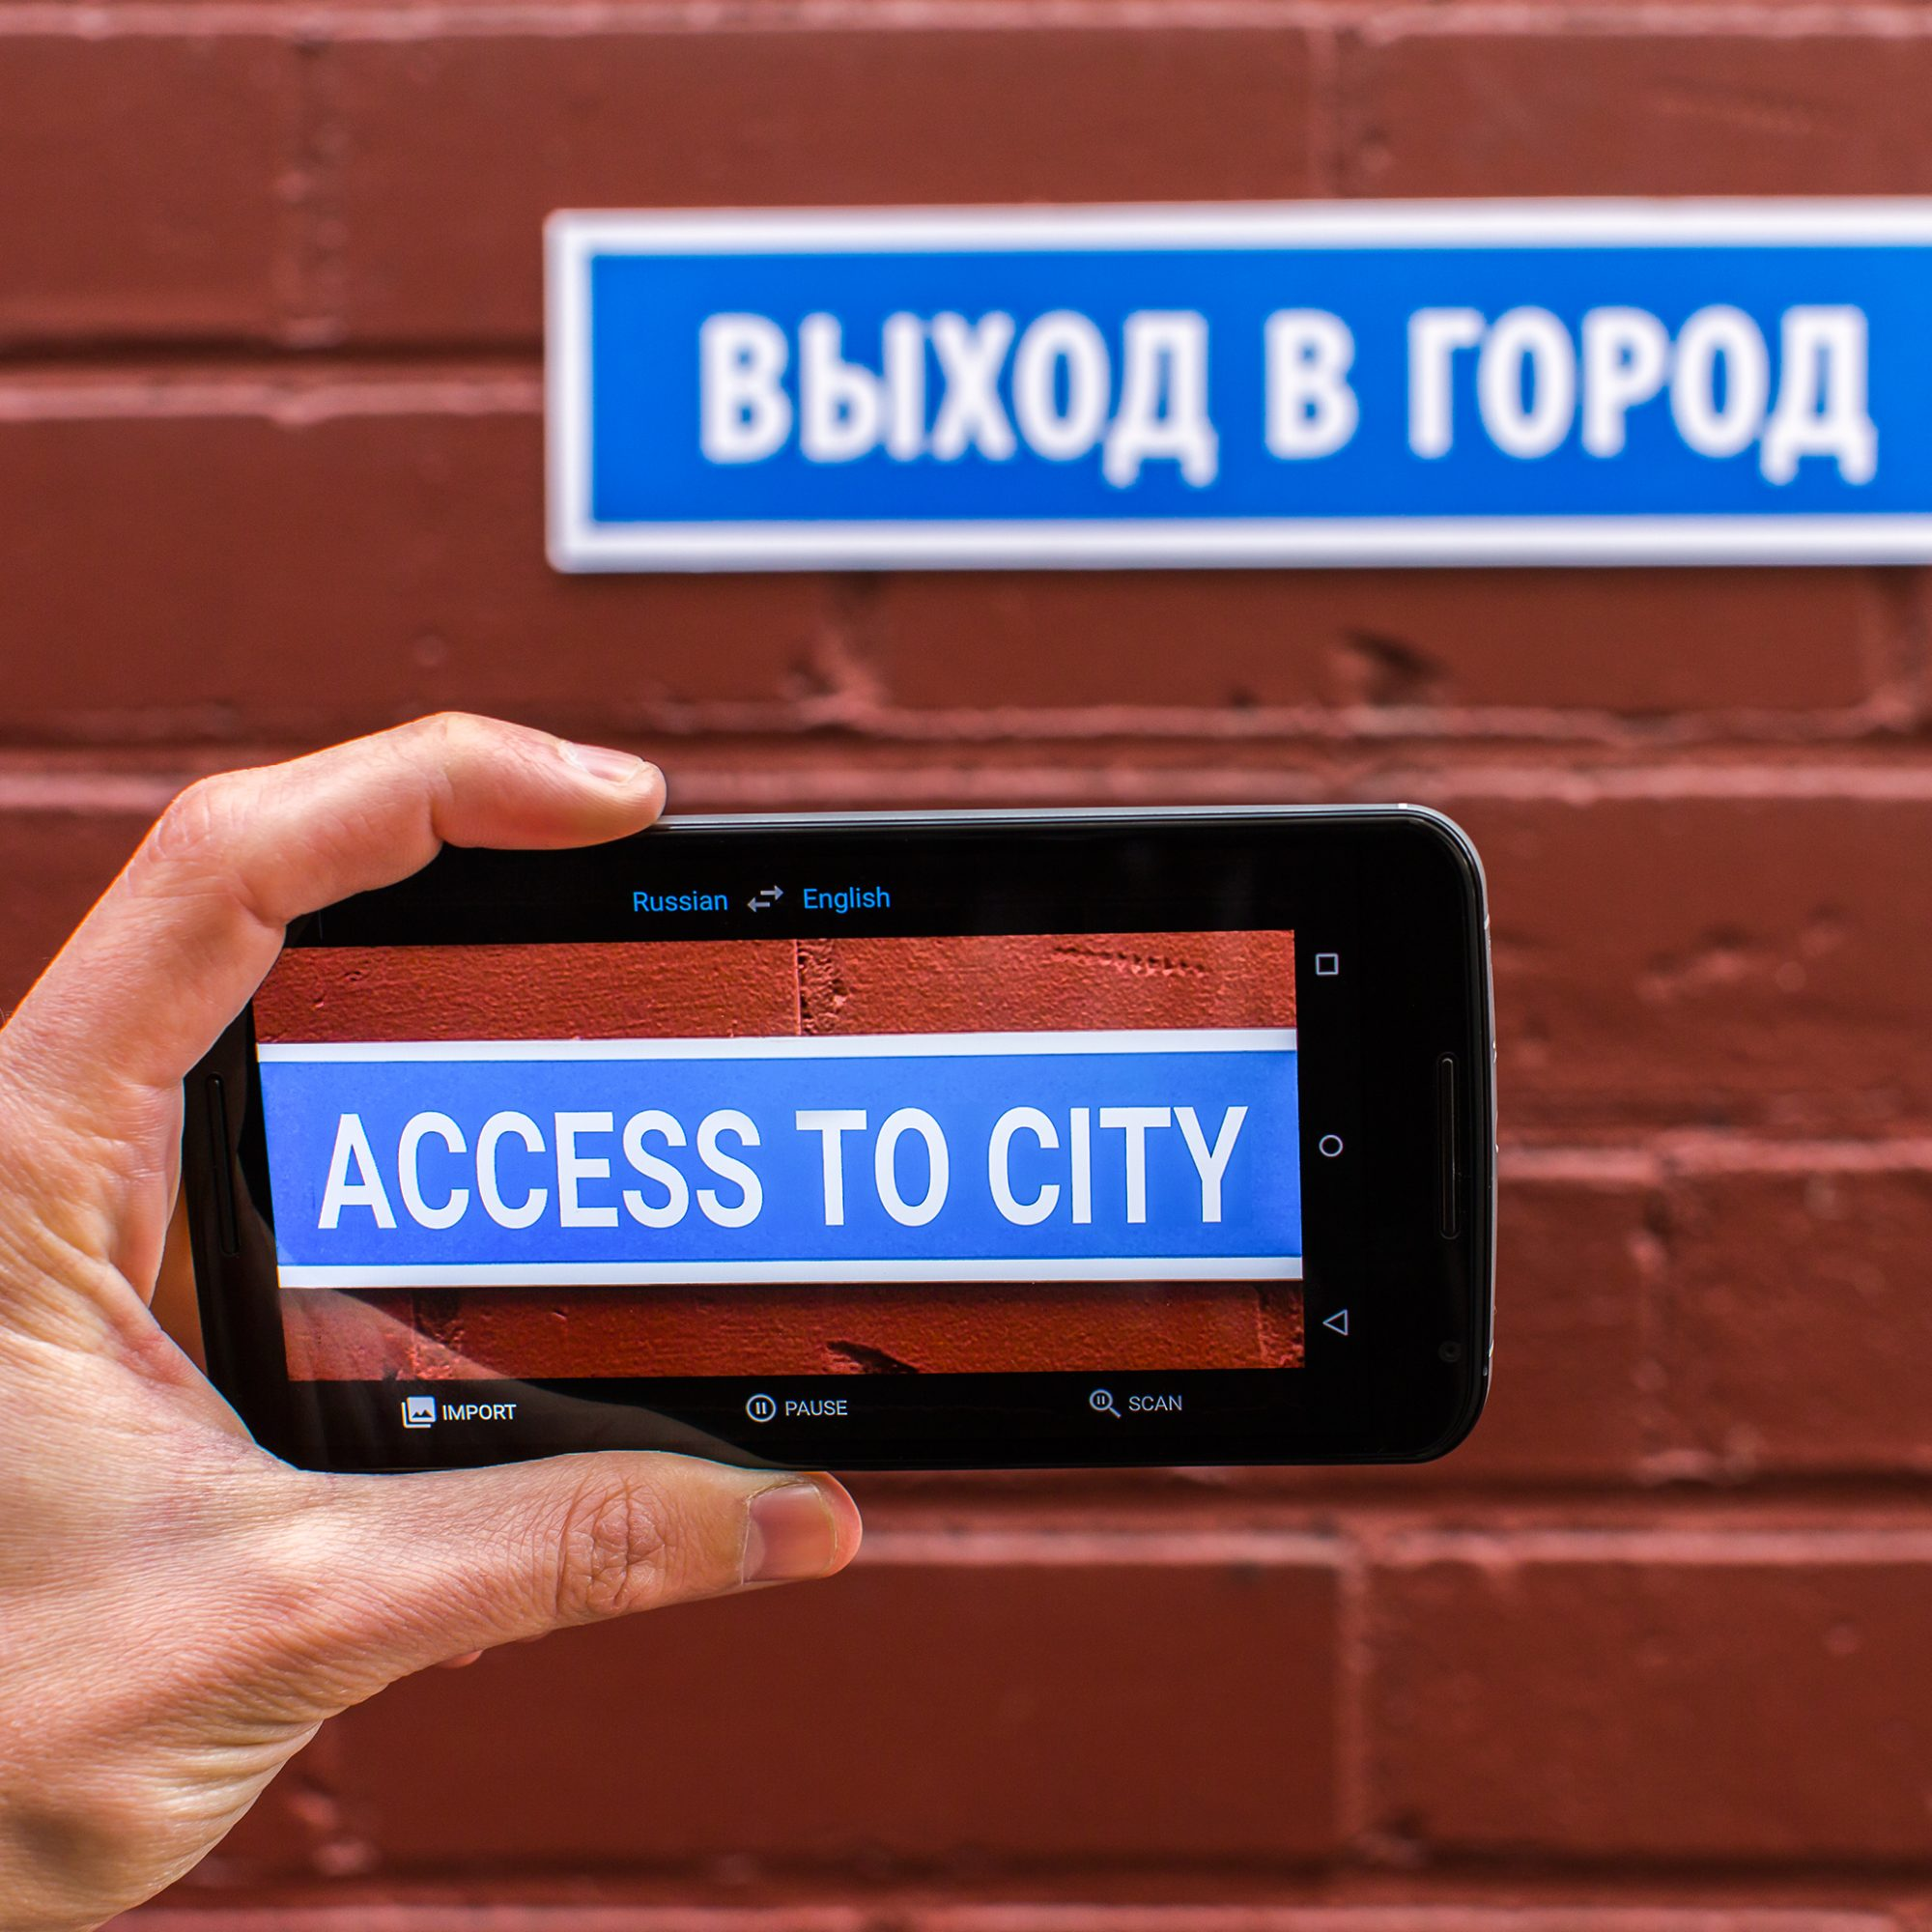 Why We Have A Love/Hate Relationship With the New Google Translate